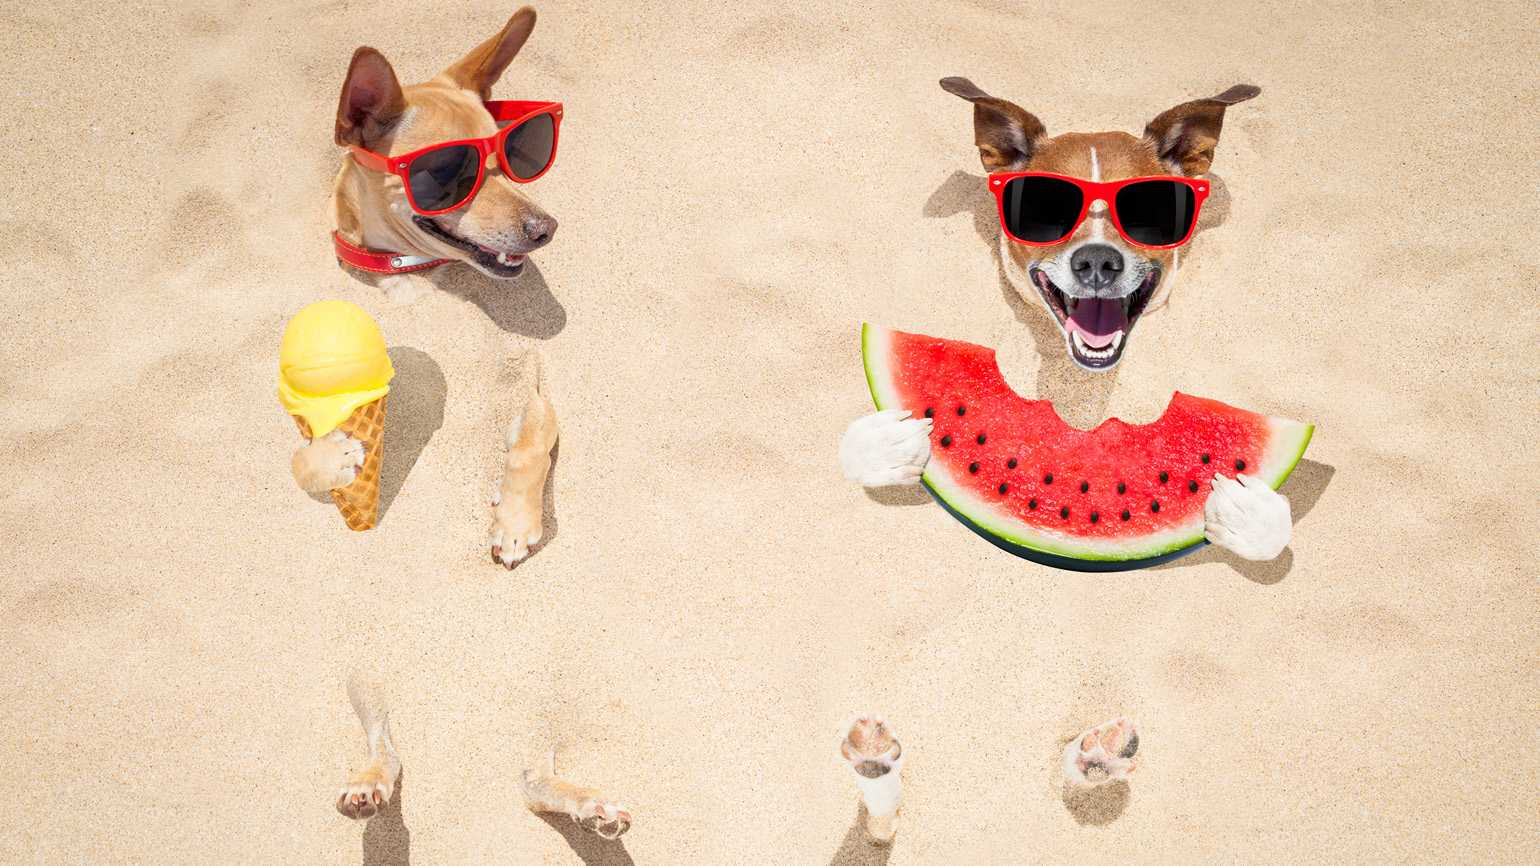 Couple of dogs wearing sunglasses at the beach eating ice cream and watermelon